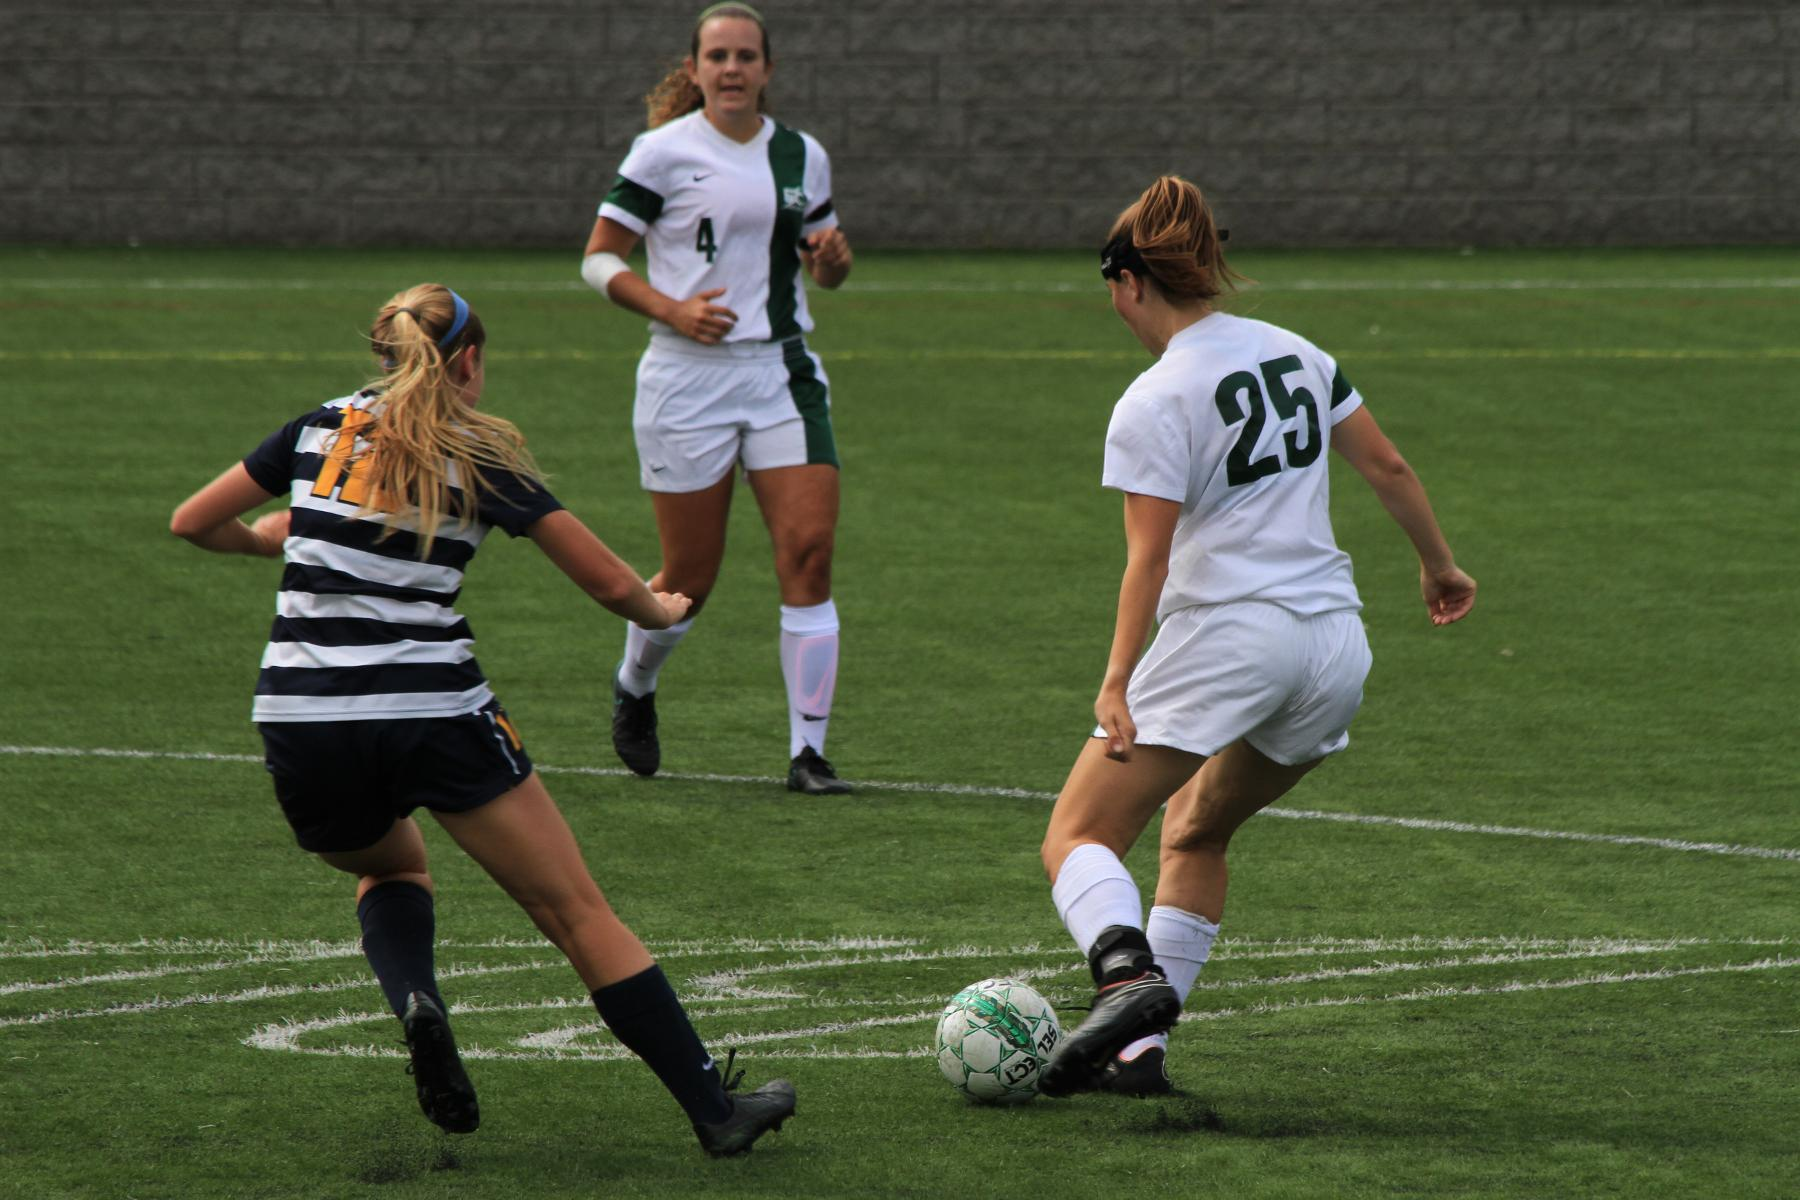 Wellesley Edges Women's Soccer, 1-0